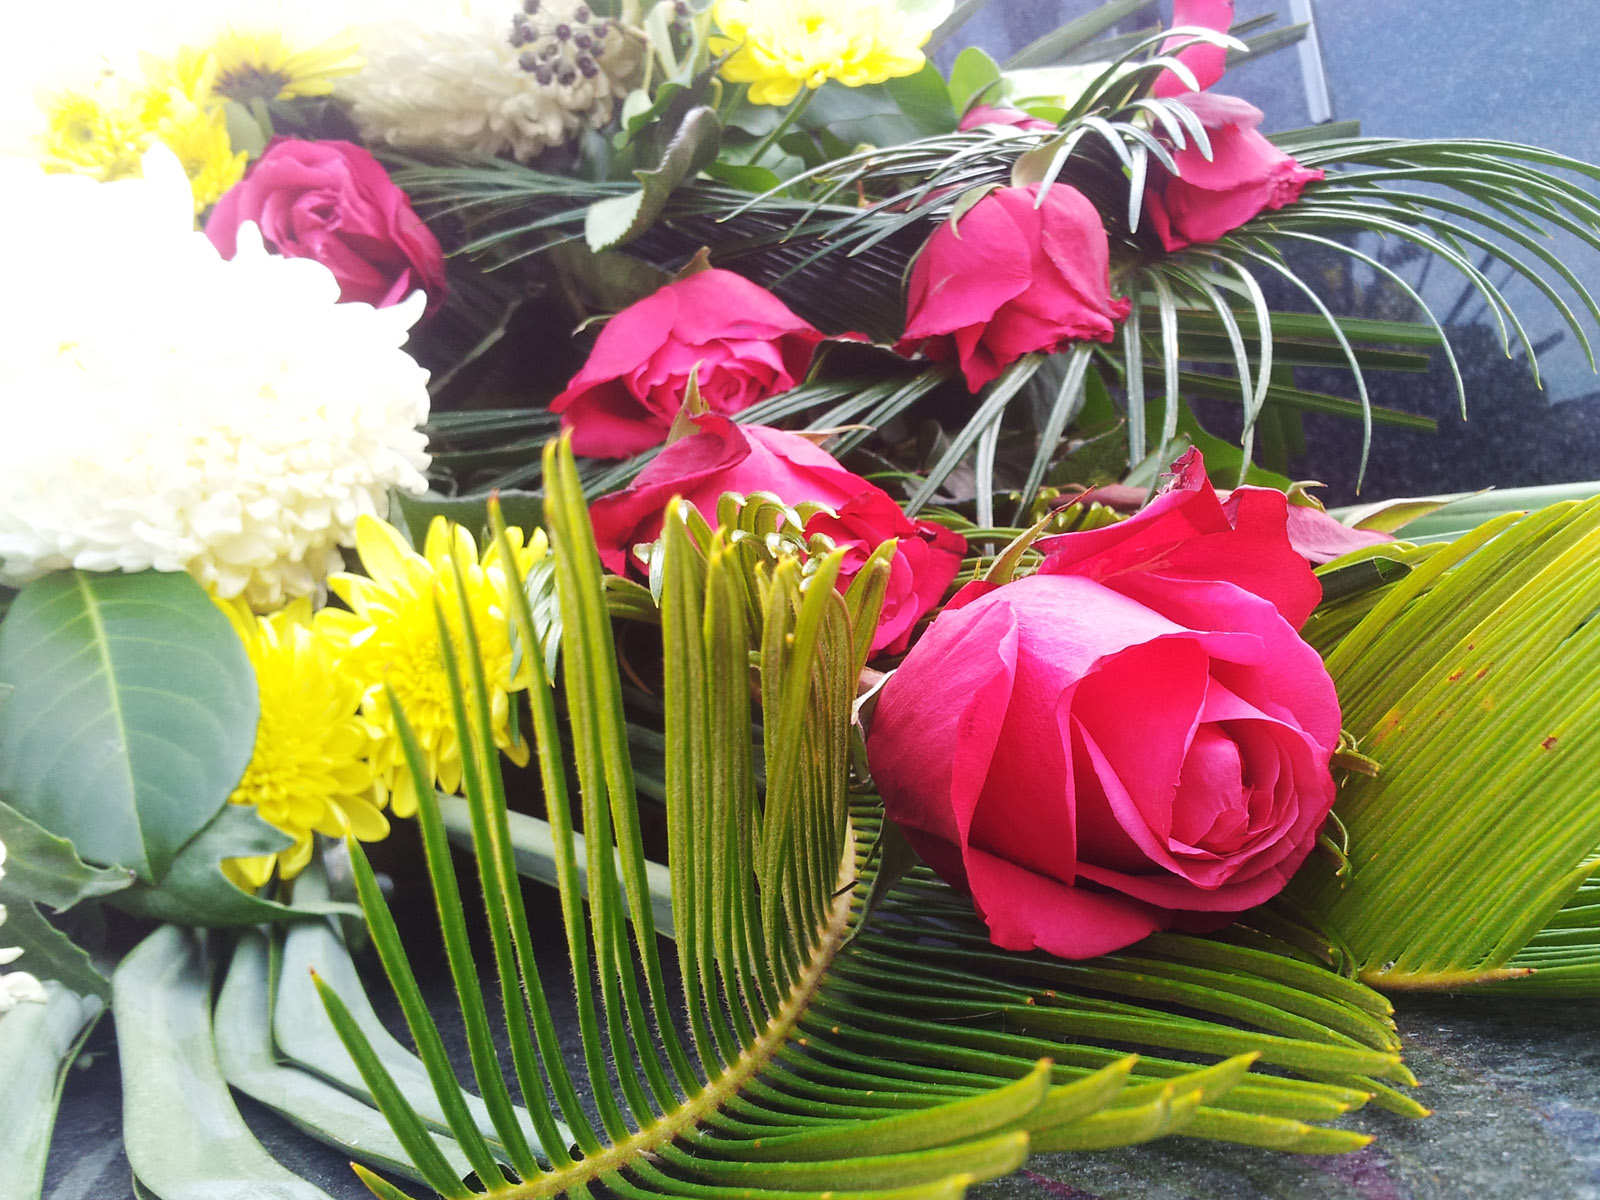 Some of the most popular florist flowers